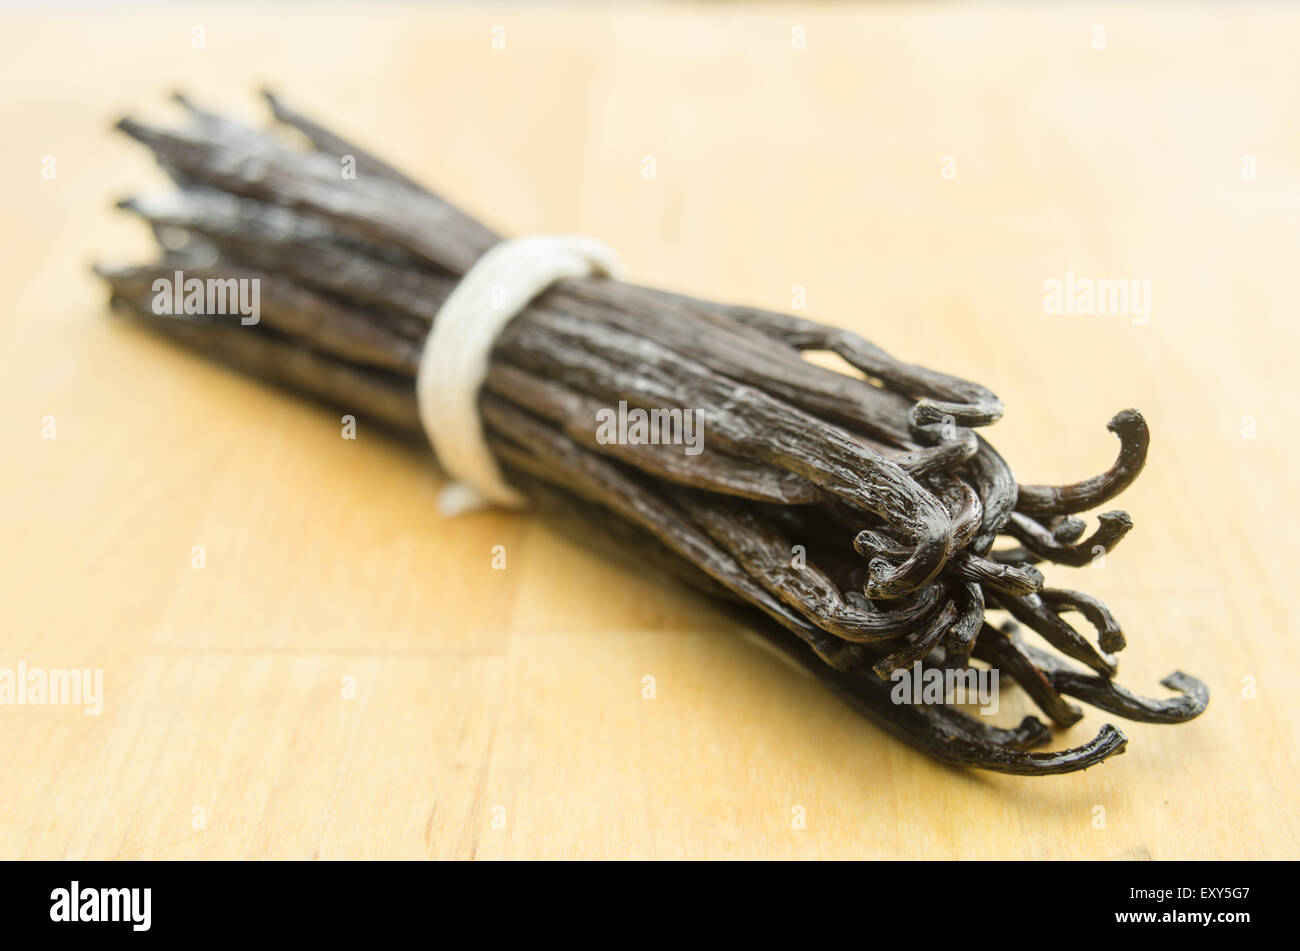 Selective focus  on the tips of a group of vanilla beans on a butcher block cutting board - Stock Image